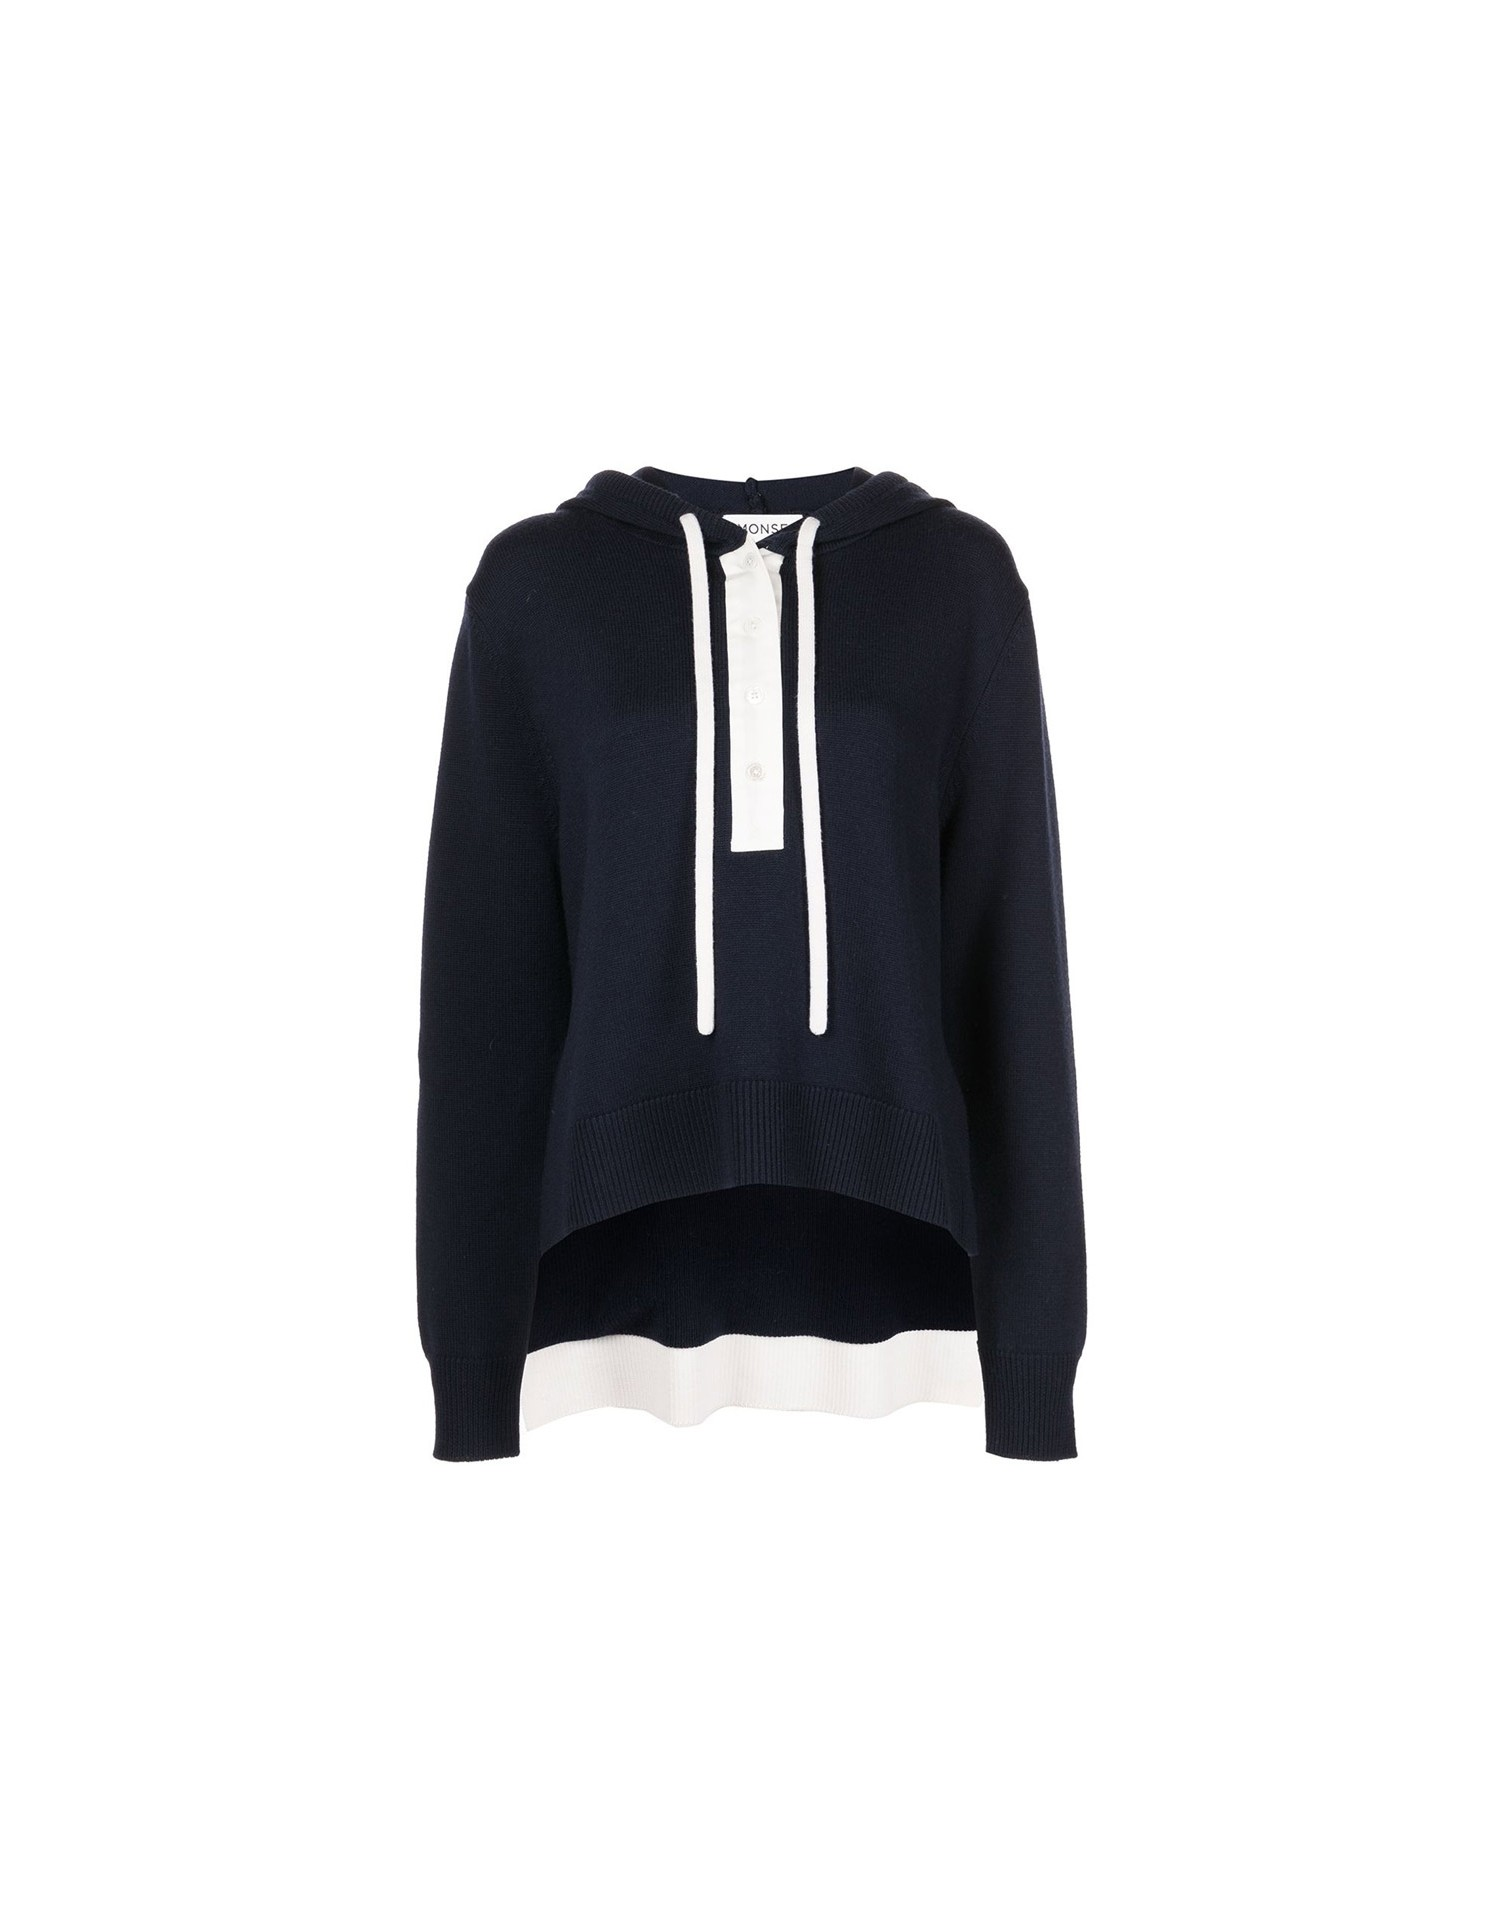 MONSE Rugby Knit Hoodie in Midnight and Ivory Flat Front